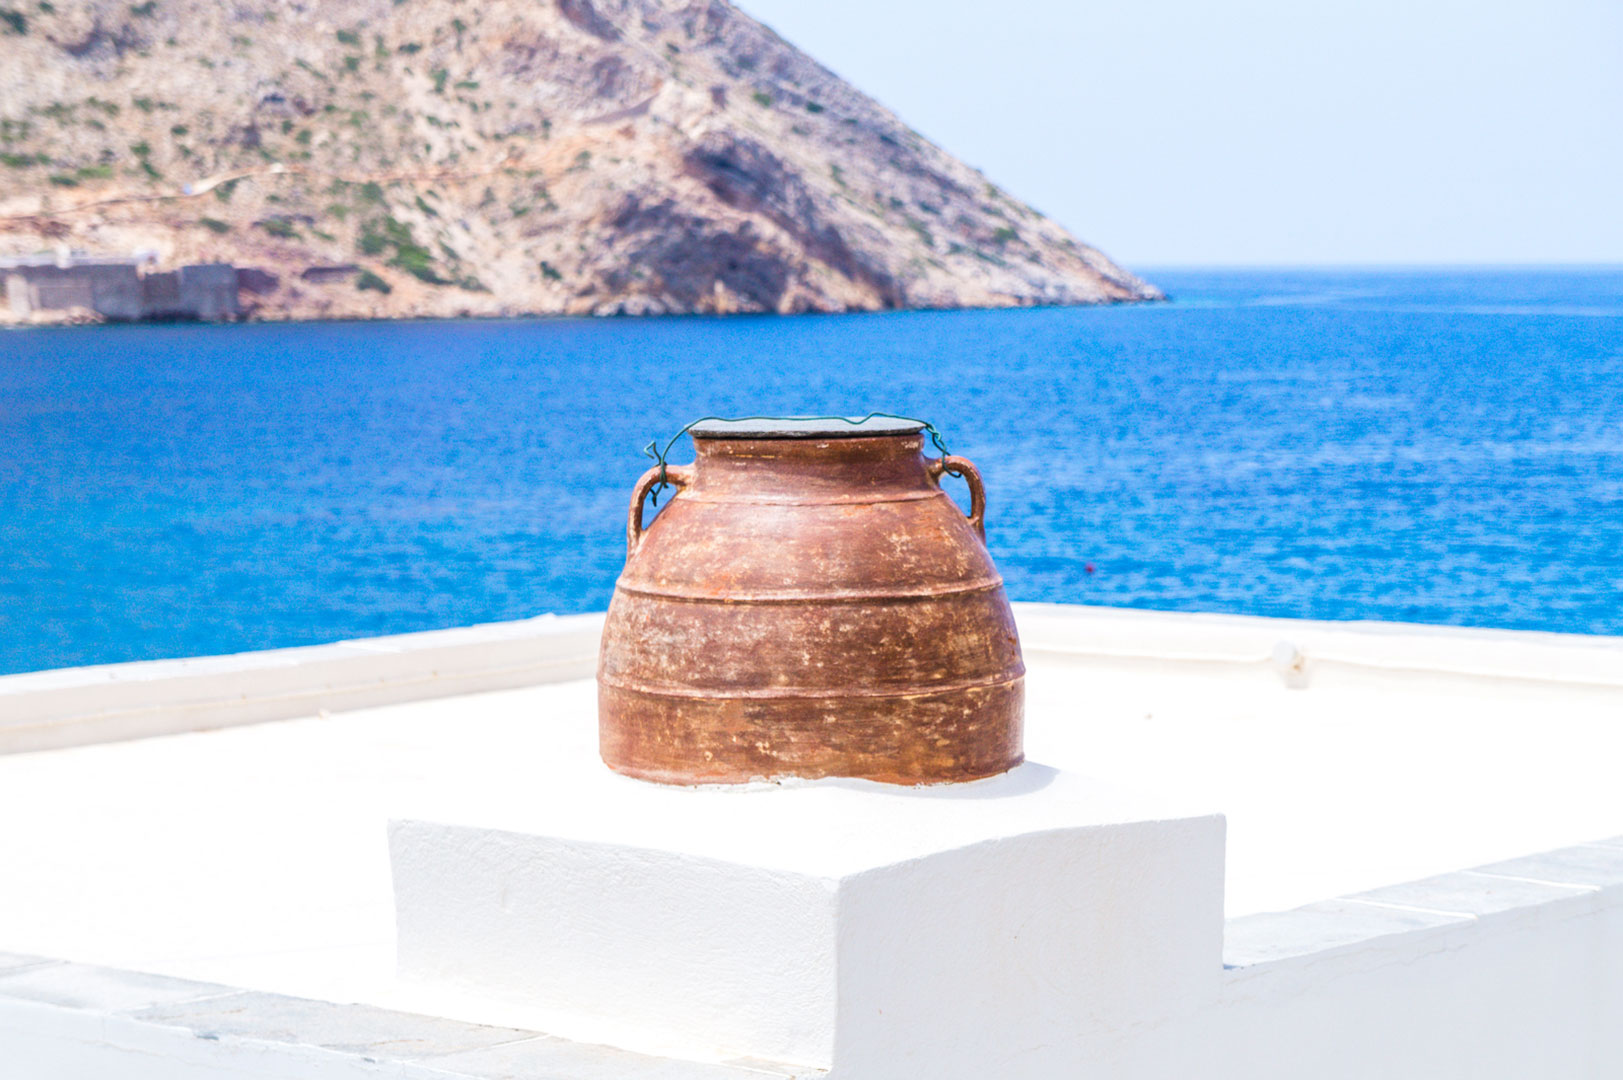 sifnos-greece-la-vie-en-blog-all-rights-reserved-40